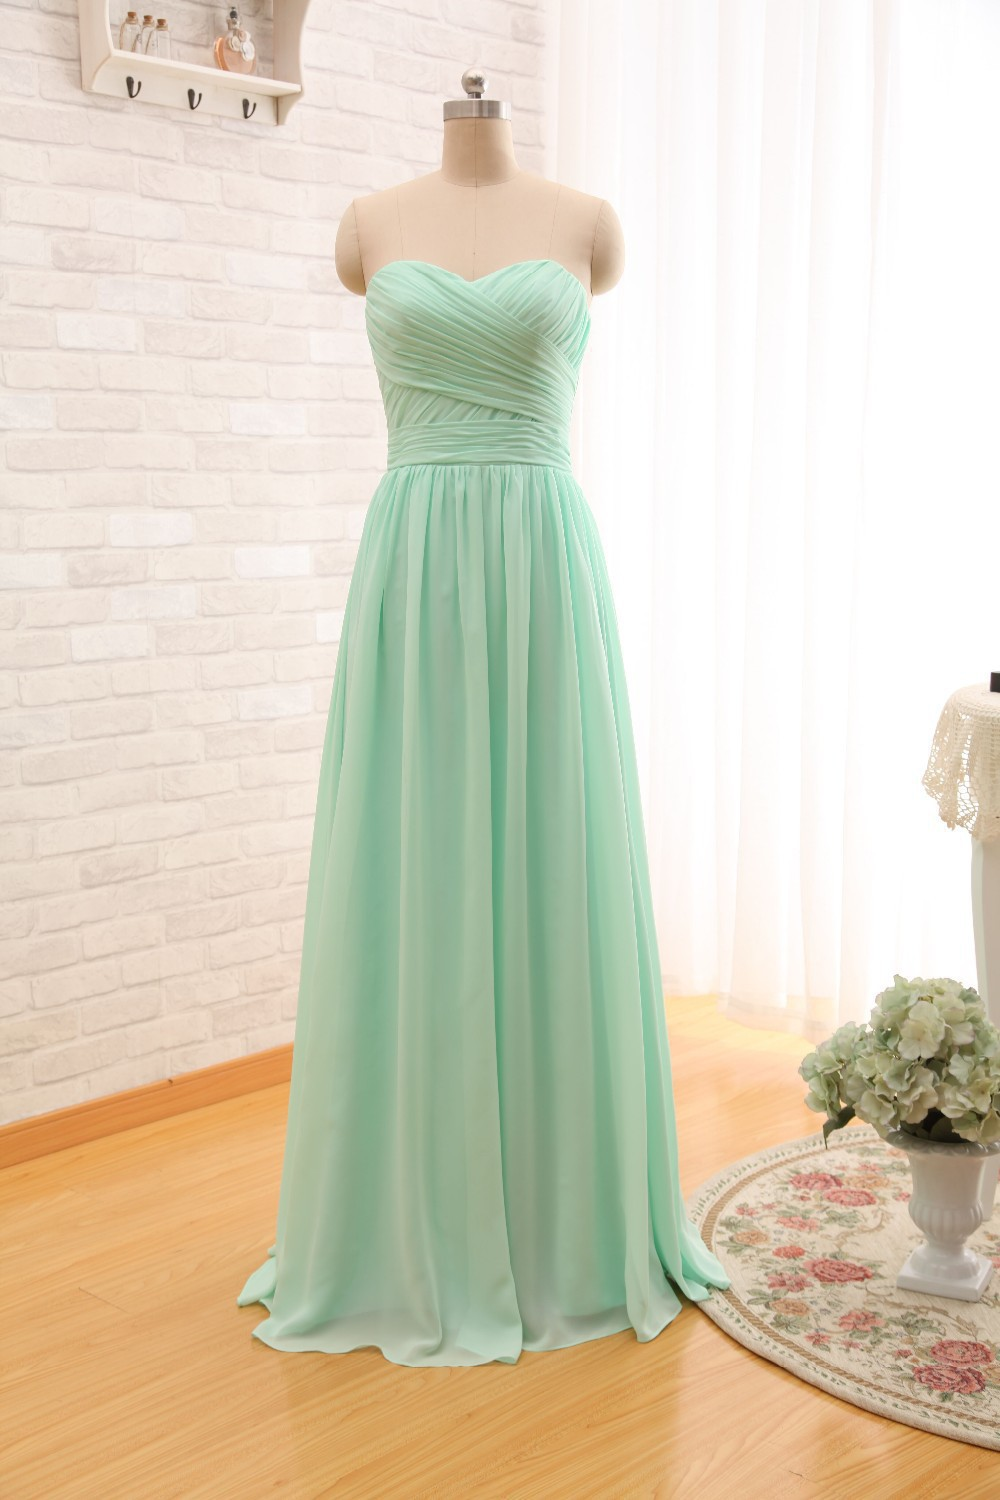 Mint bridesmaid dresses to party long formal dresses chiffon light mint bridesmaid dresses to party long formal dresses chiffon light green prom dresses under 50 vestidos dama de honor in bridesmaid dresses from weddings ombrellifo Gallery